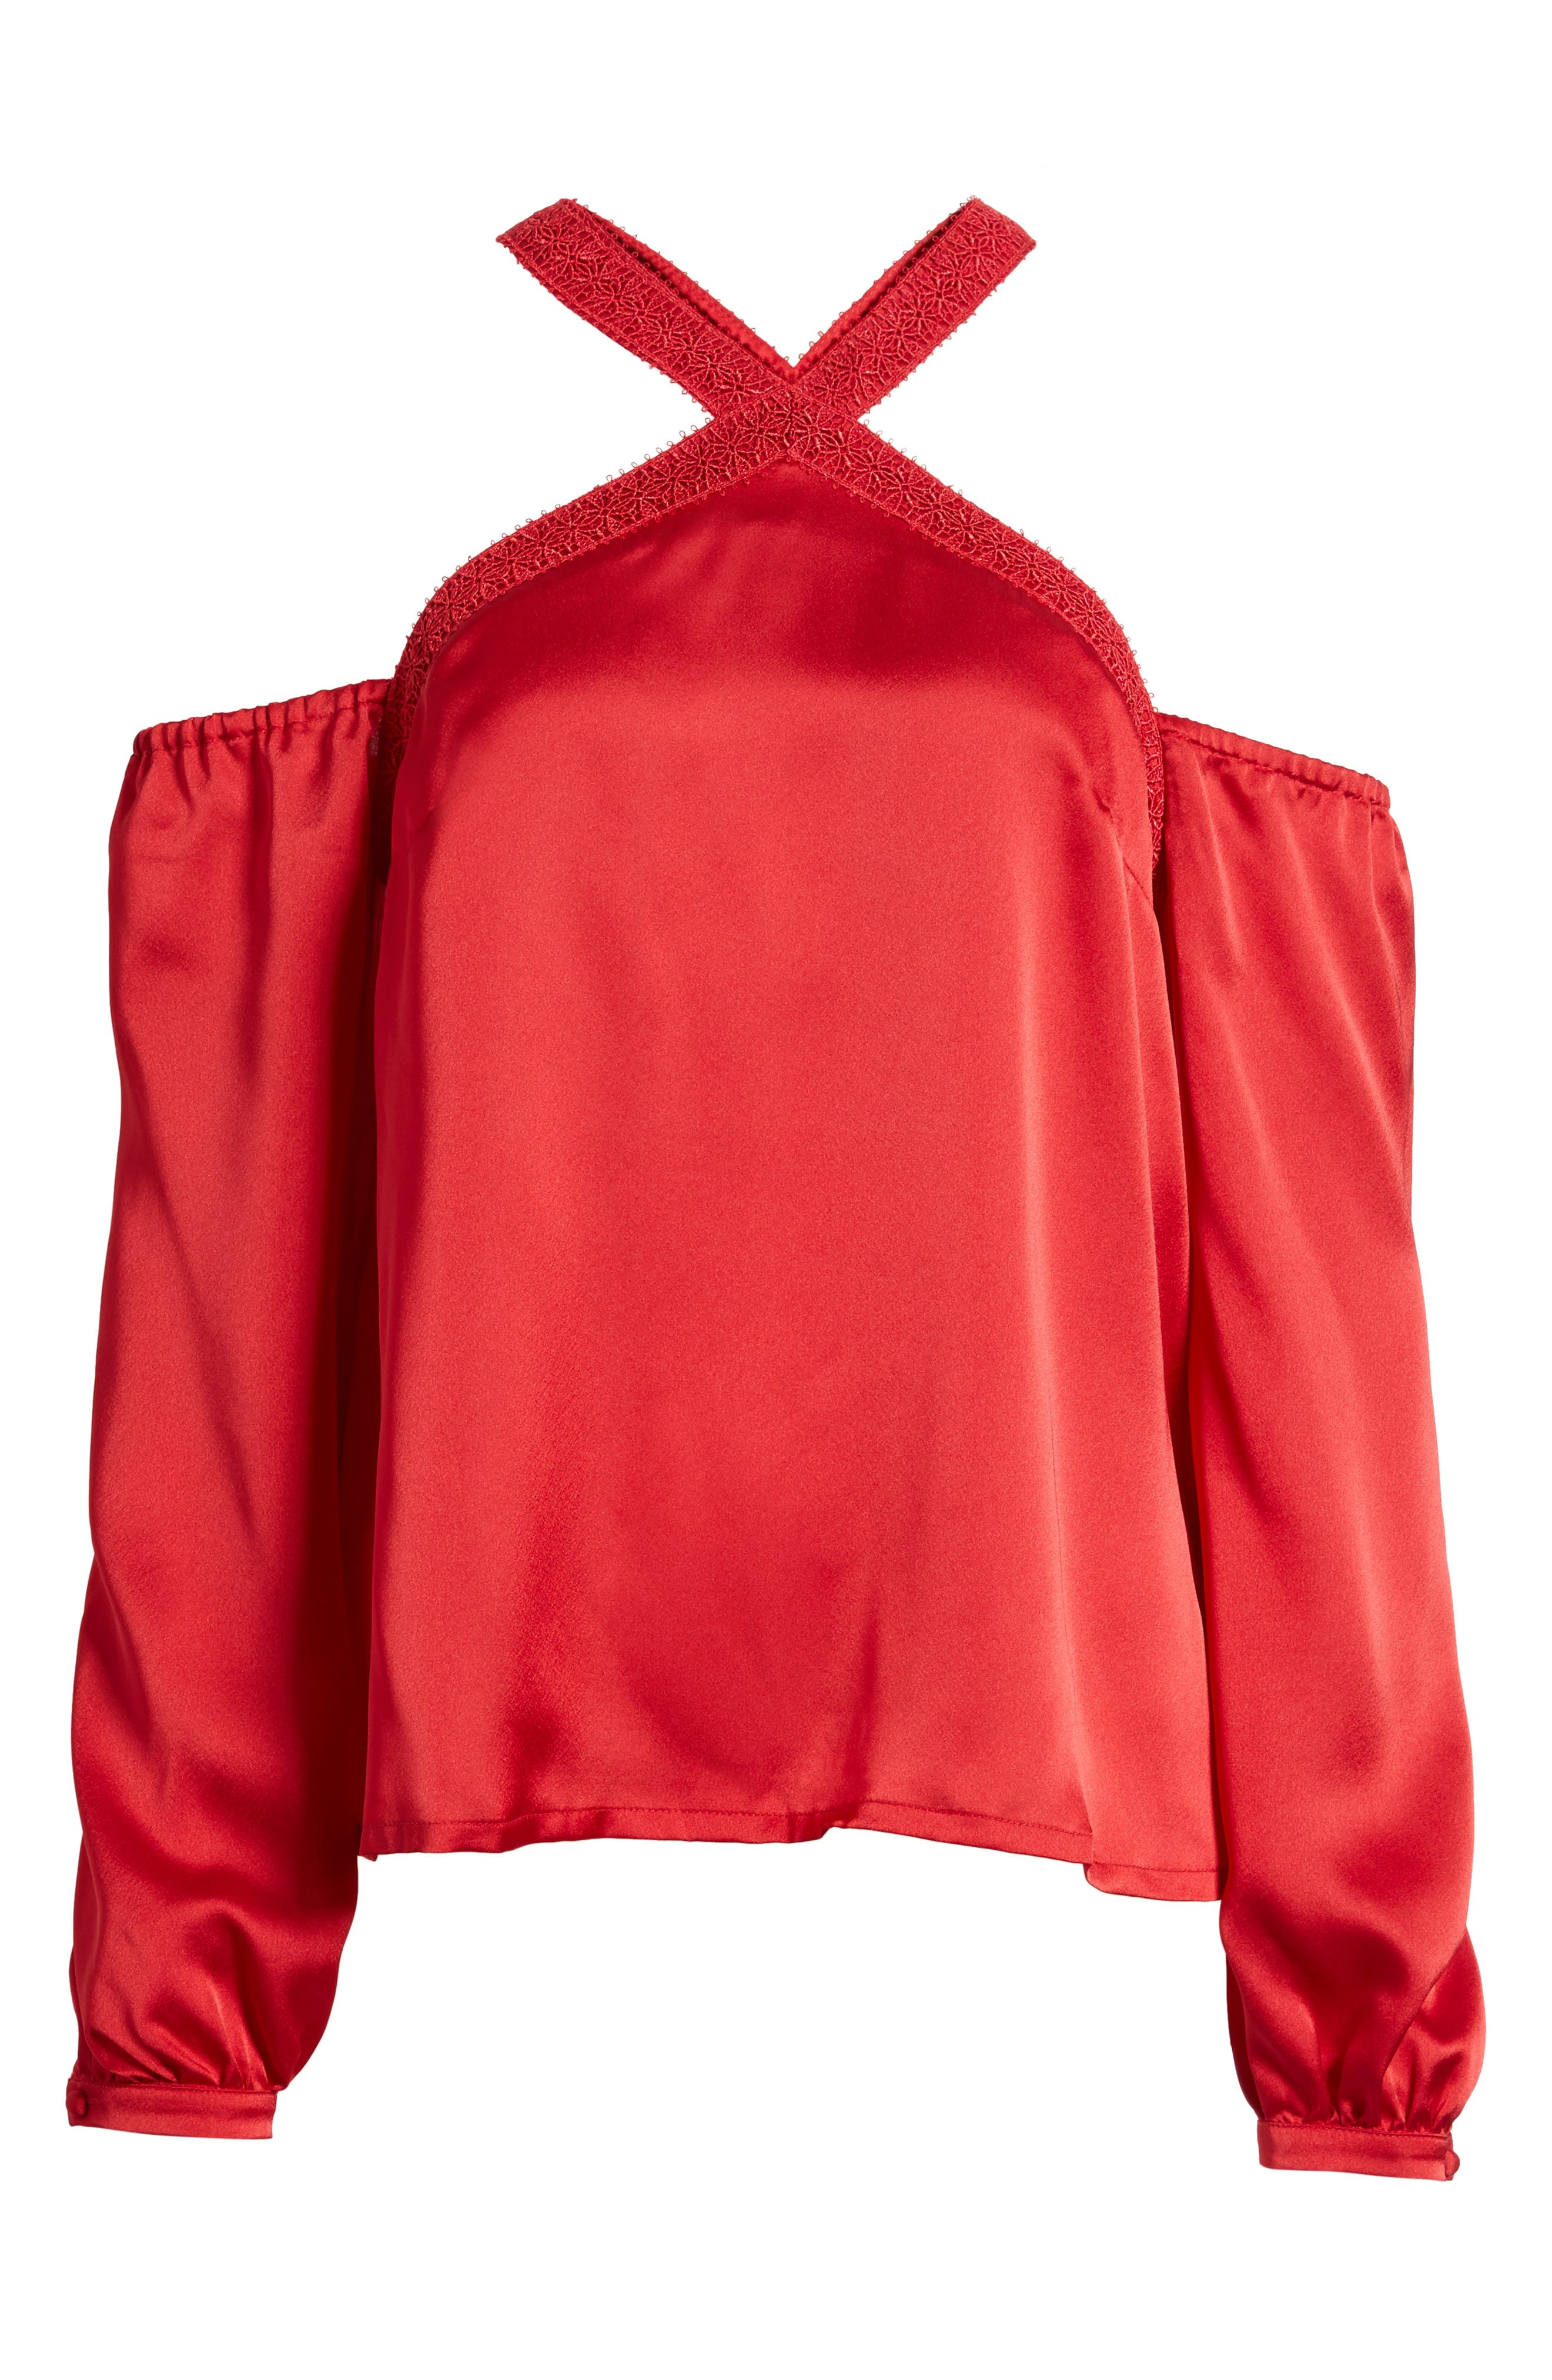 Evening Sun Cold Shoulder Blouse,                             Alternate thumbnail 6, color,                             Red